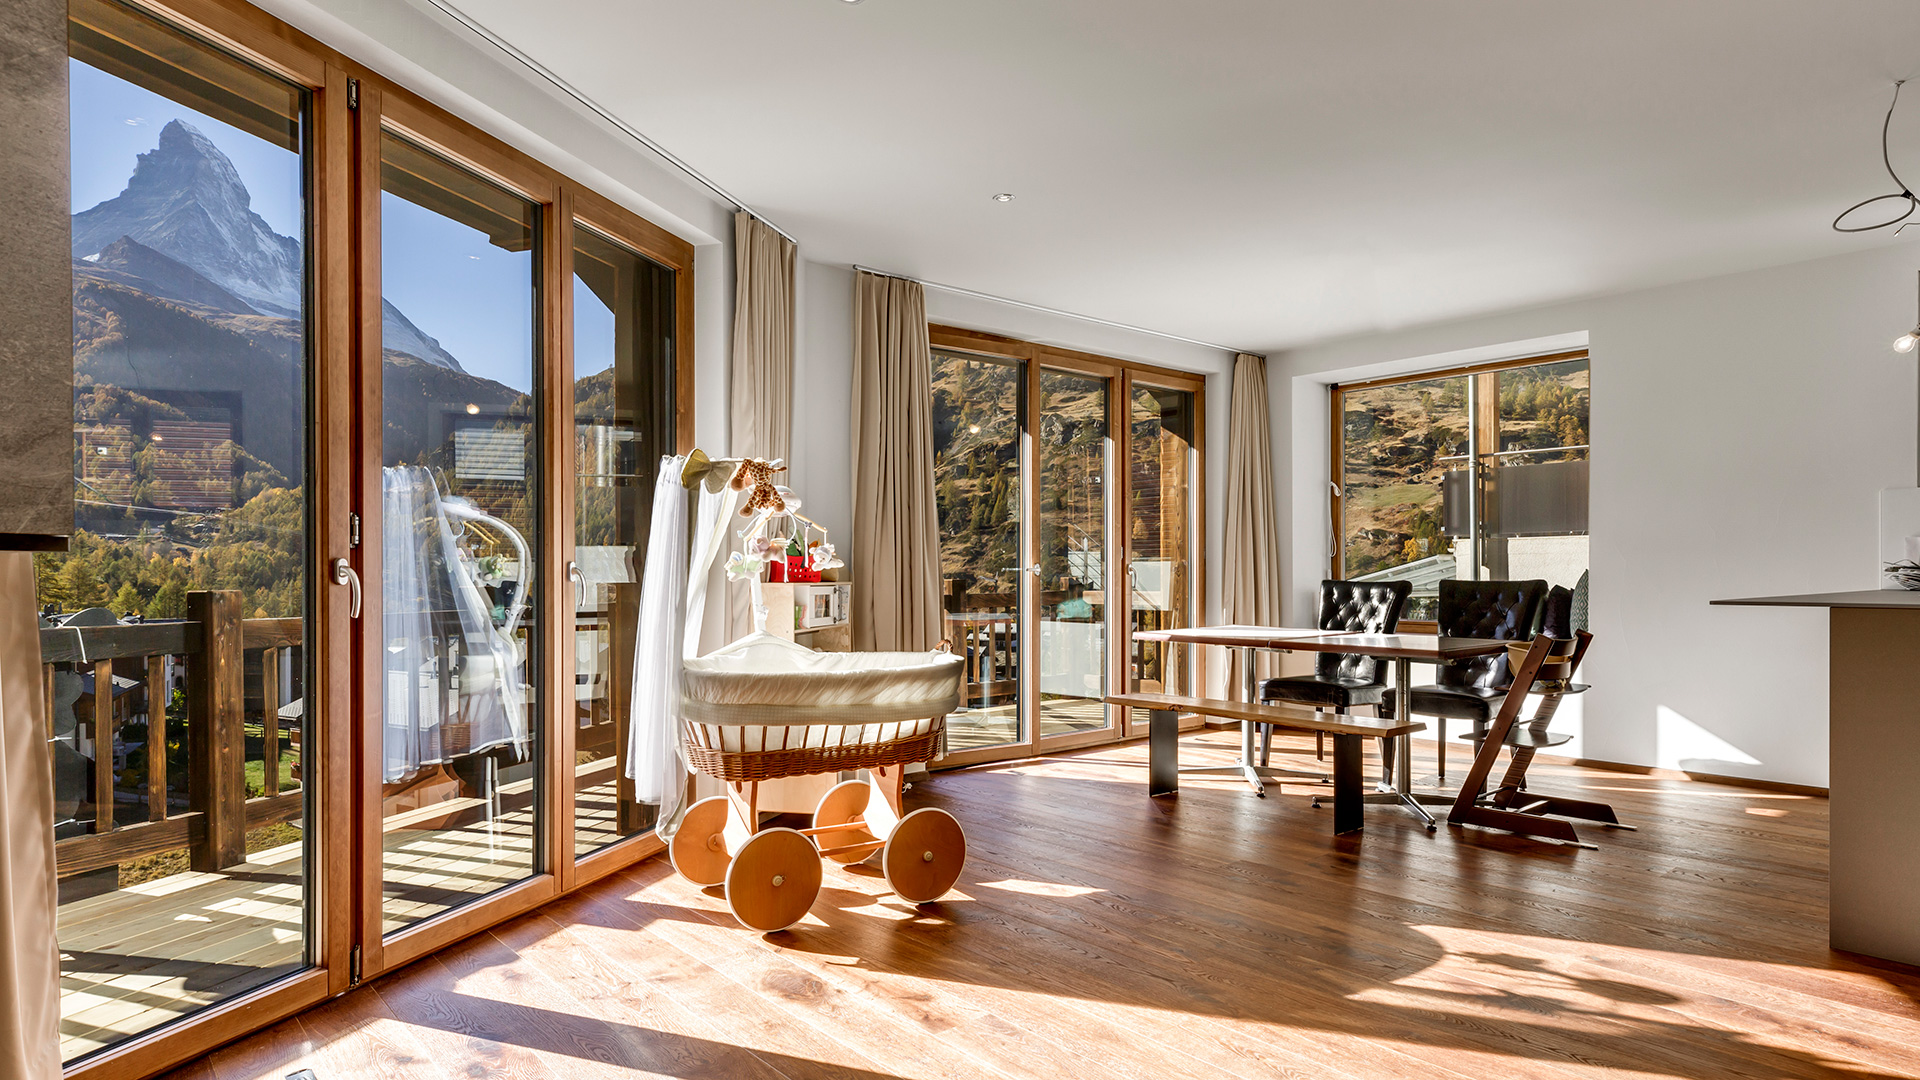 Chalet Palace Chalet, Switzerland